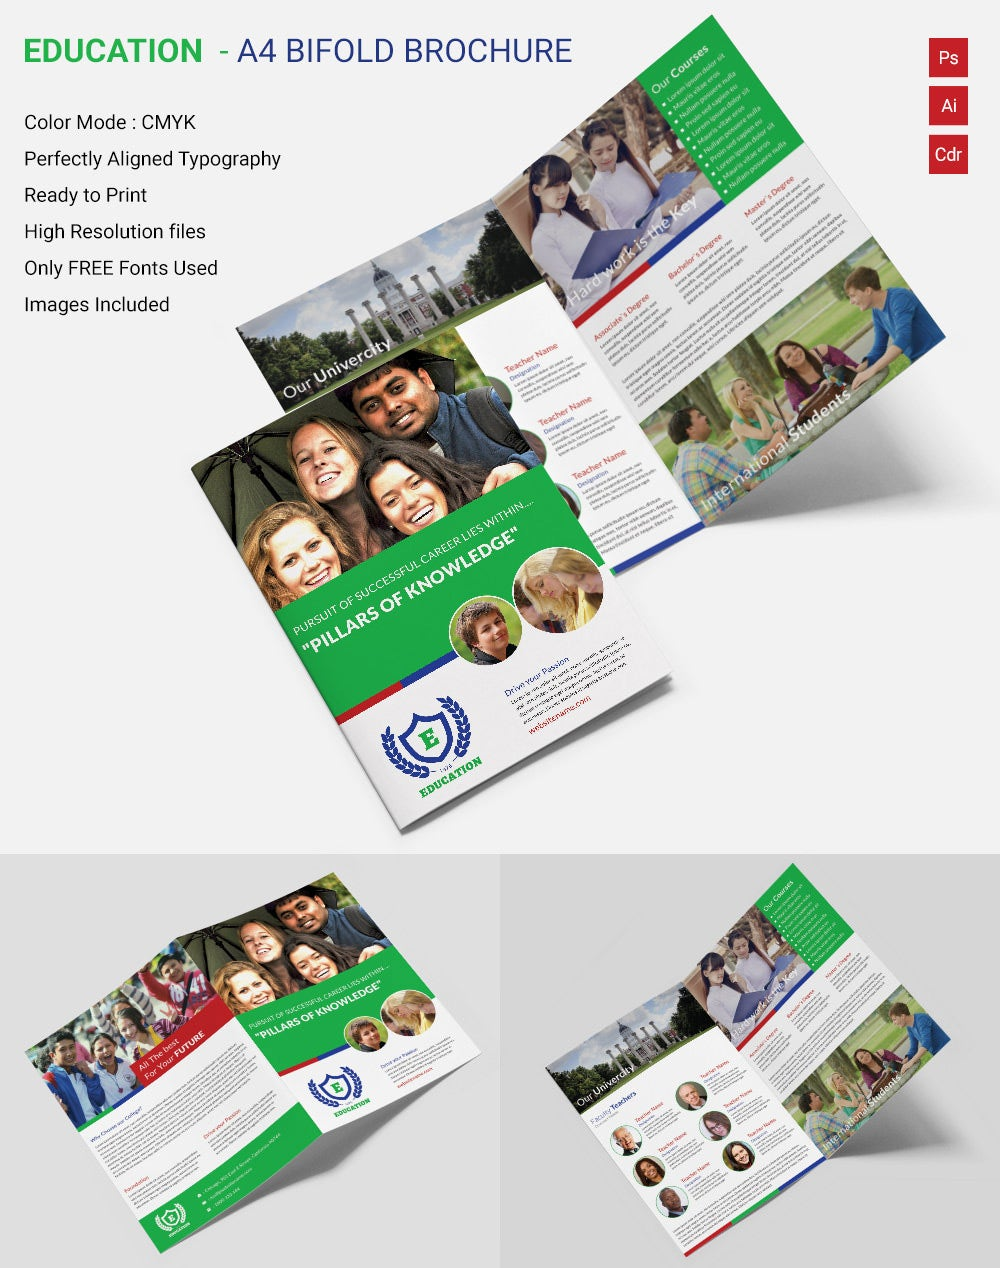 Education A4 Bi Fold Brochure